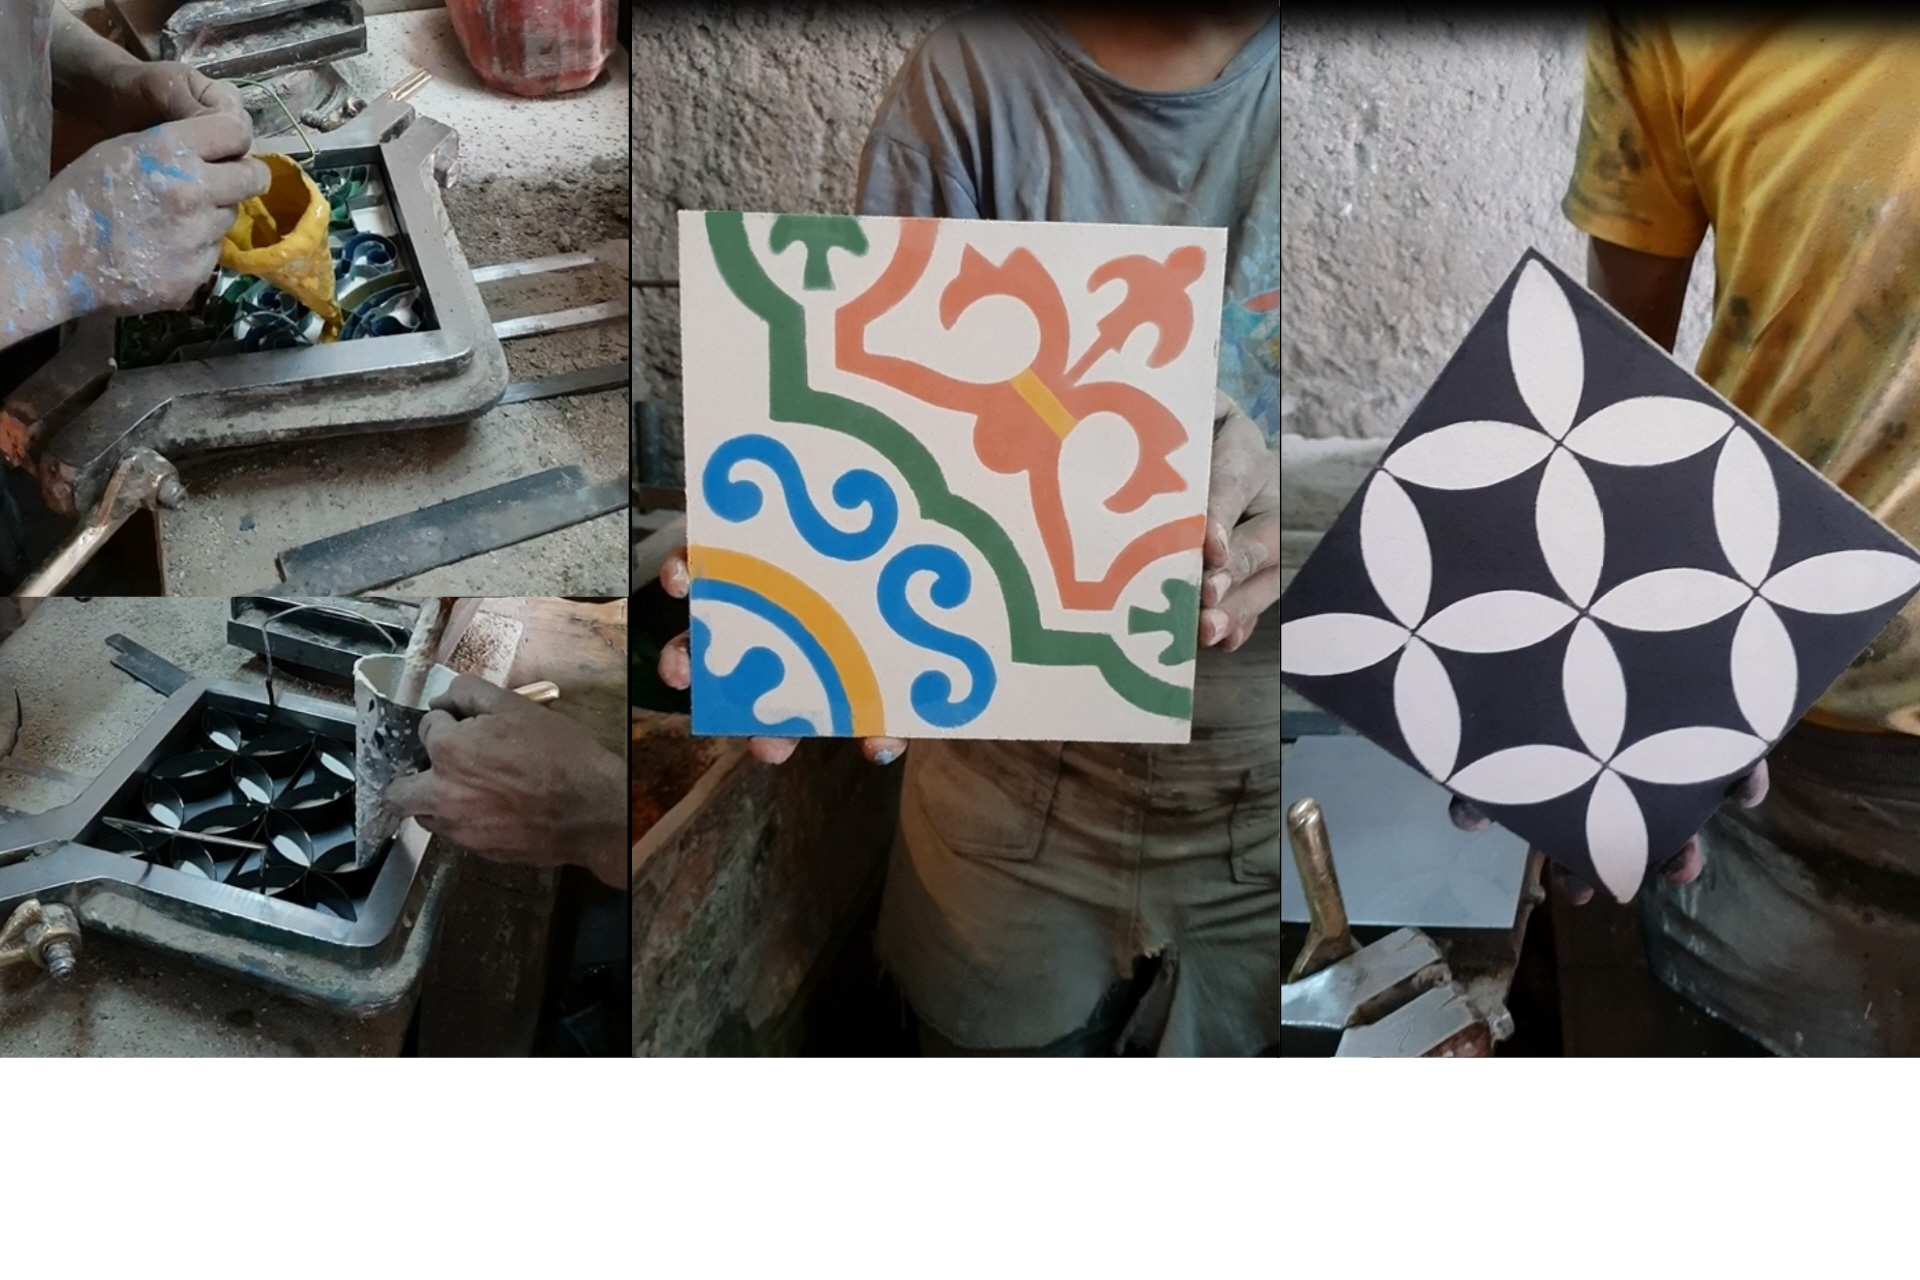 Cement tiles,zellige,encaustic cement tiles, moroccan cement tiles, Zementfliesen